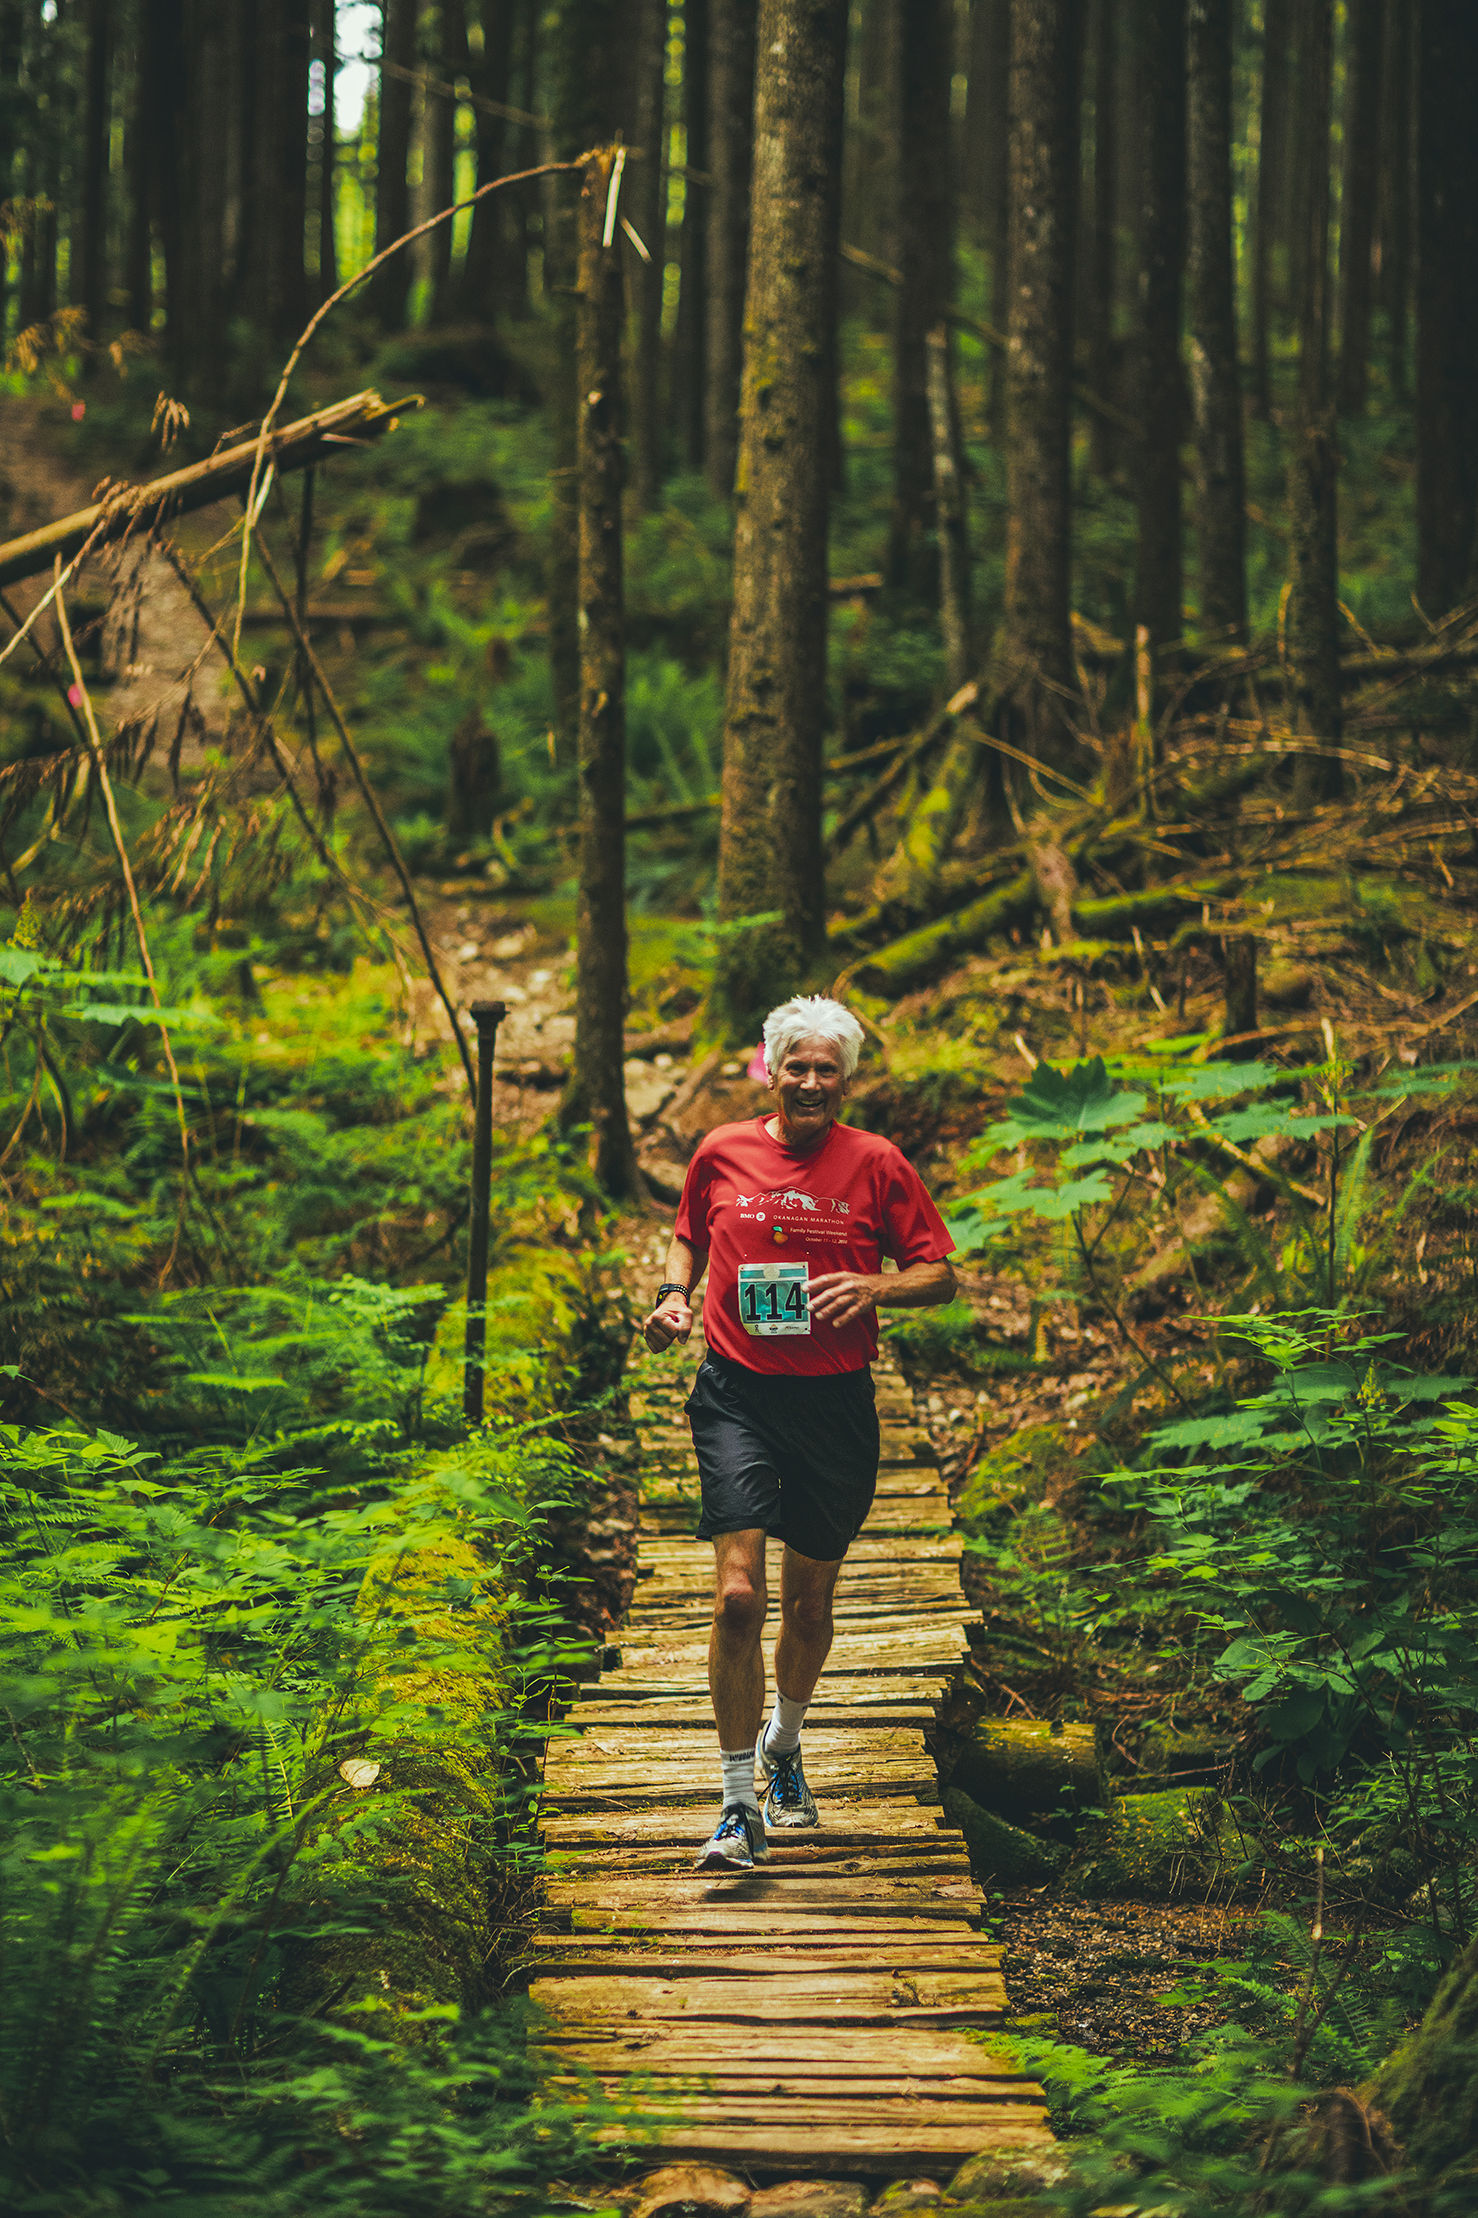 Fraser Valley Trail Races - Bear Mountain - IMG_1933 by Brice Ferre Studio - Vancouver Portrait Adventure and Athlete Photographer.jpg